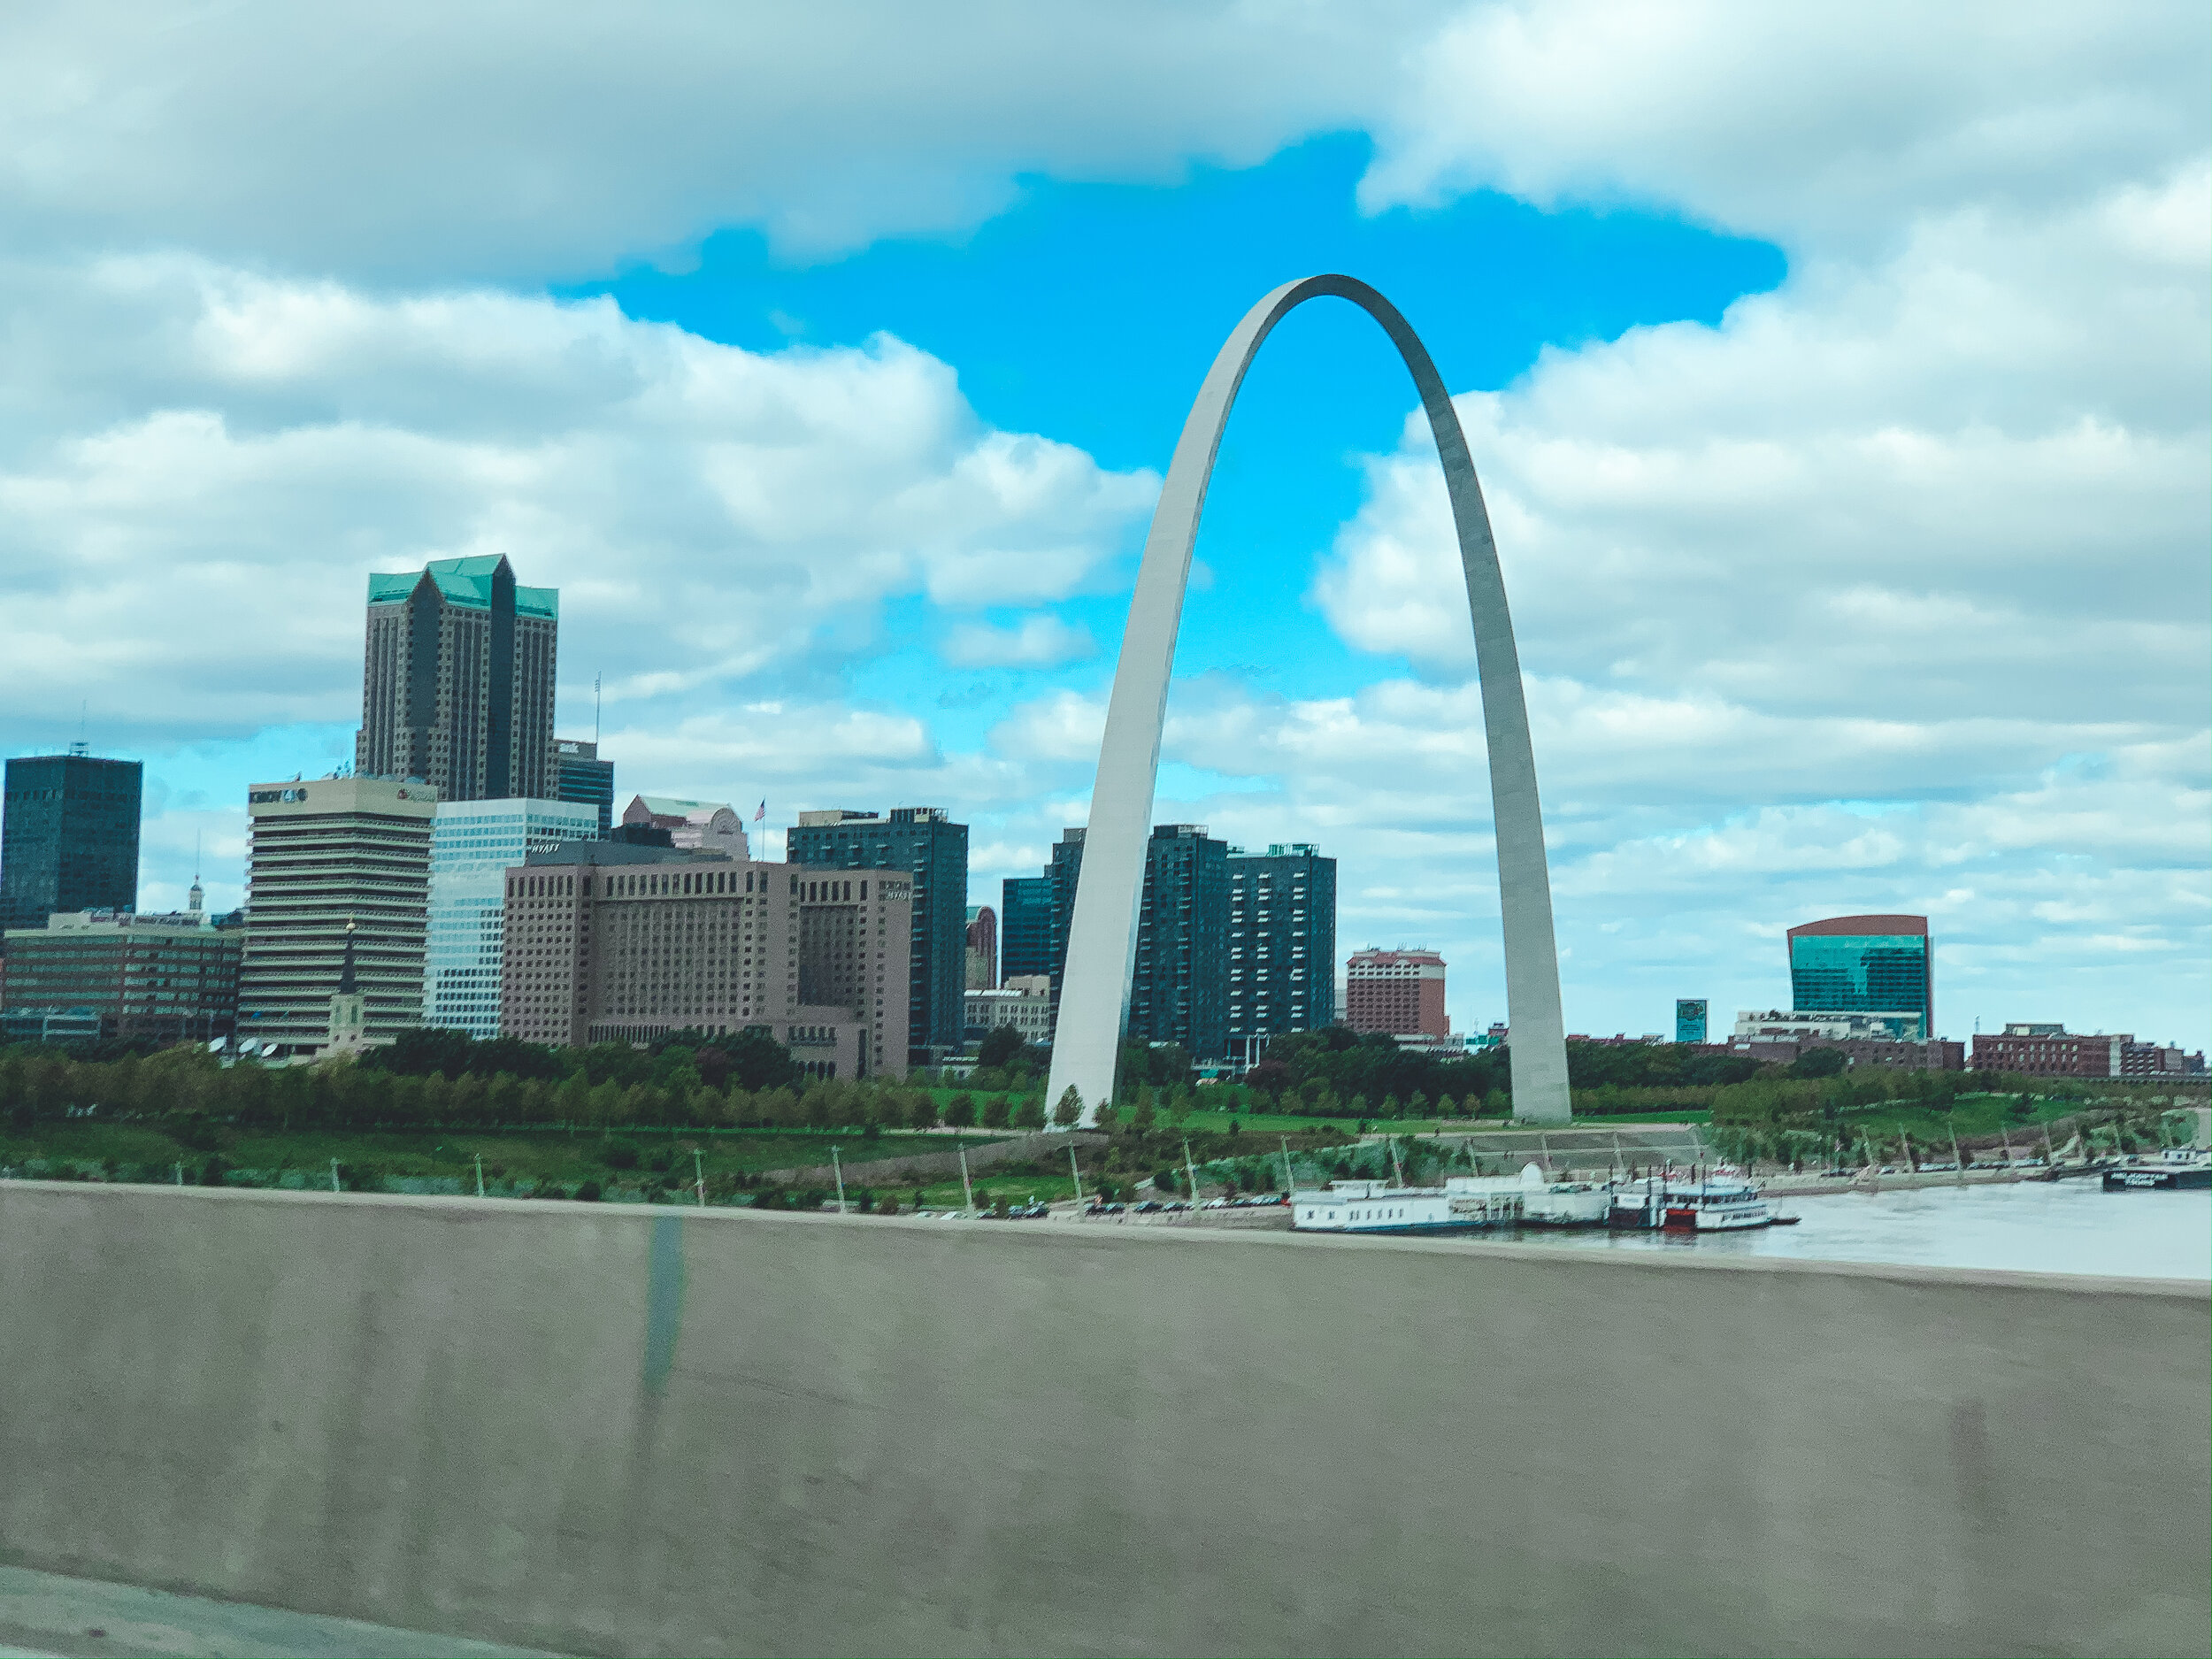 Quick stop in St. Louis for some lunch!